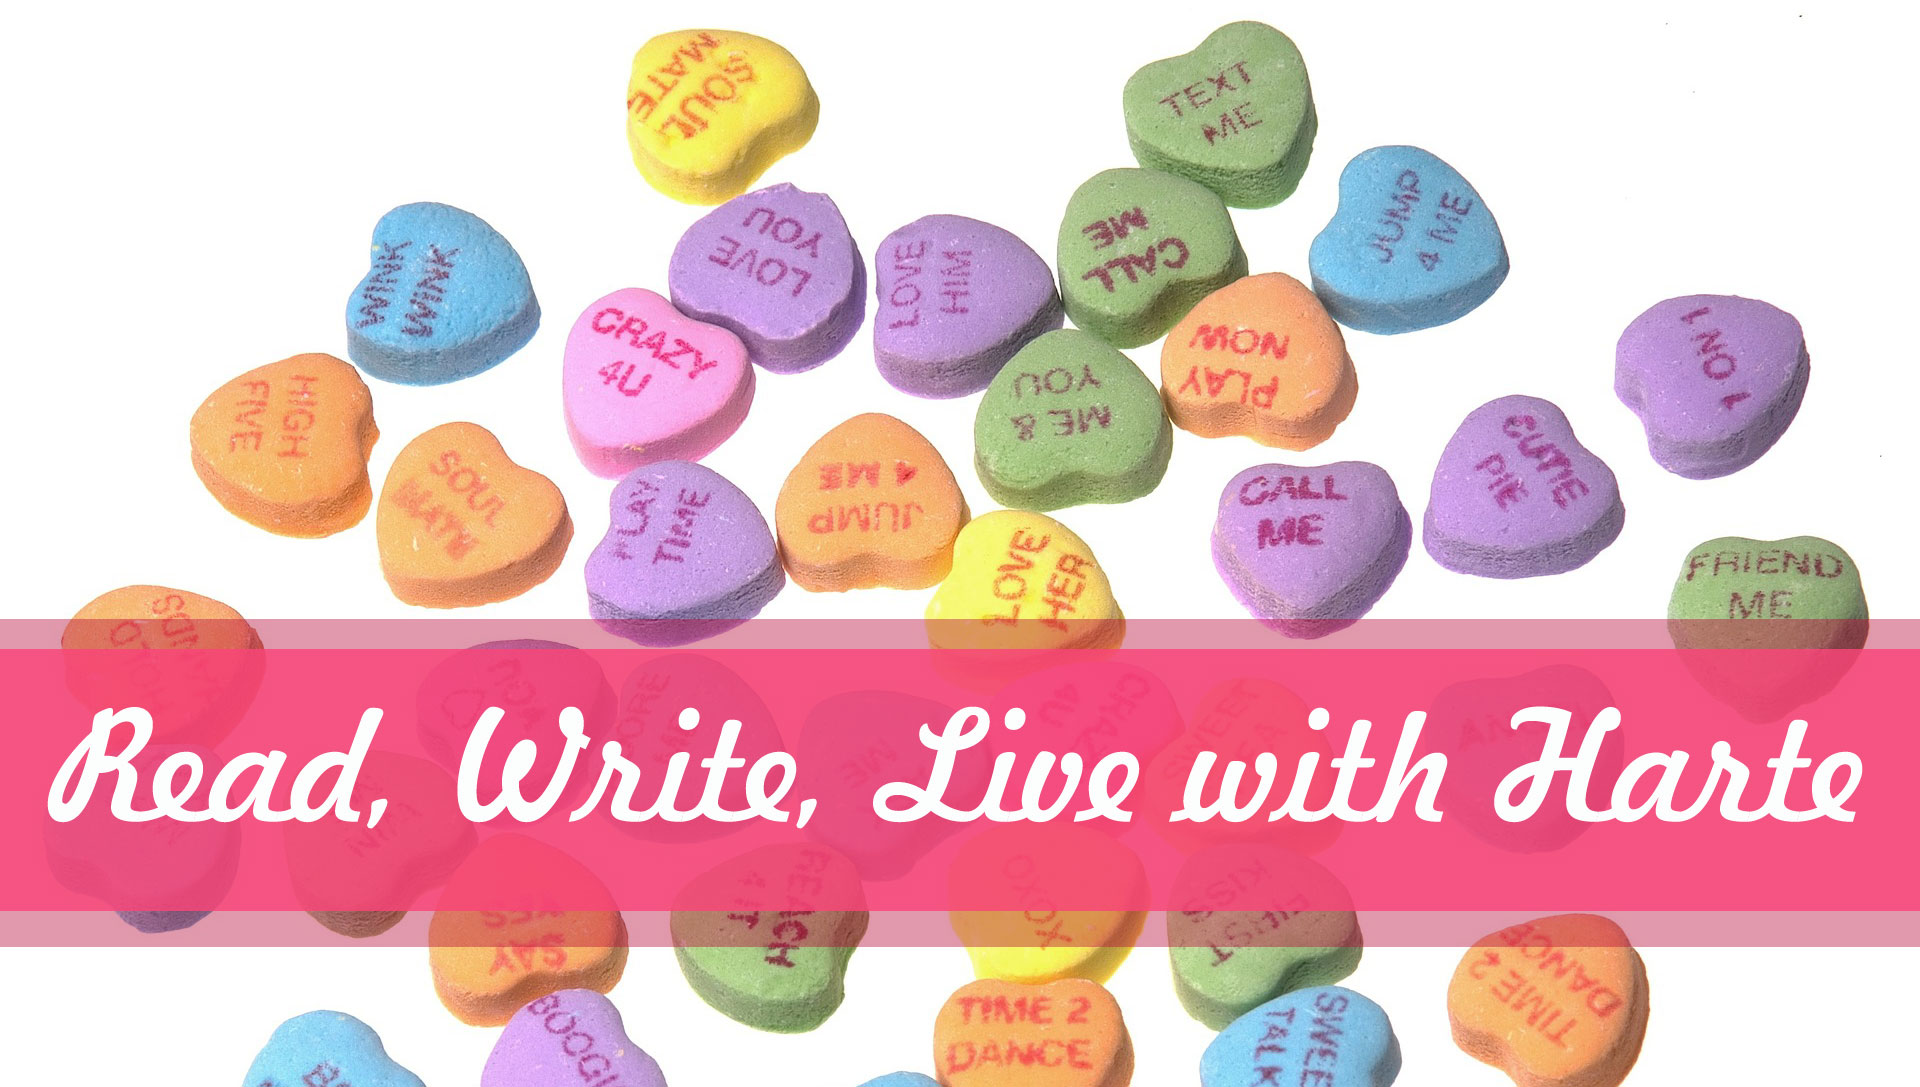 Read, Write, Live with Harte